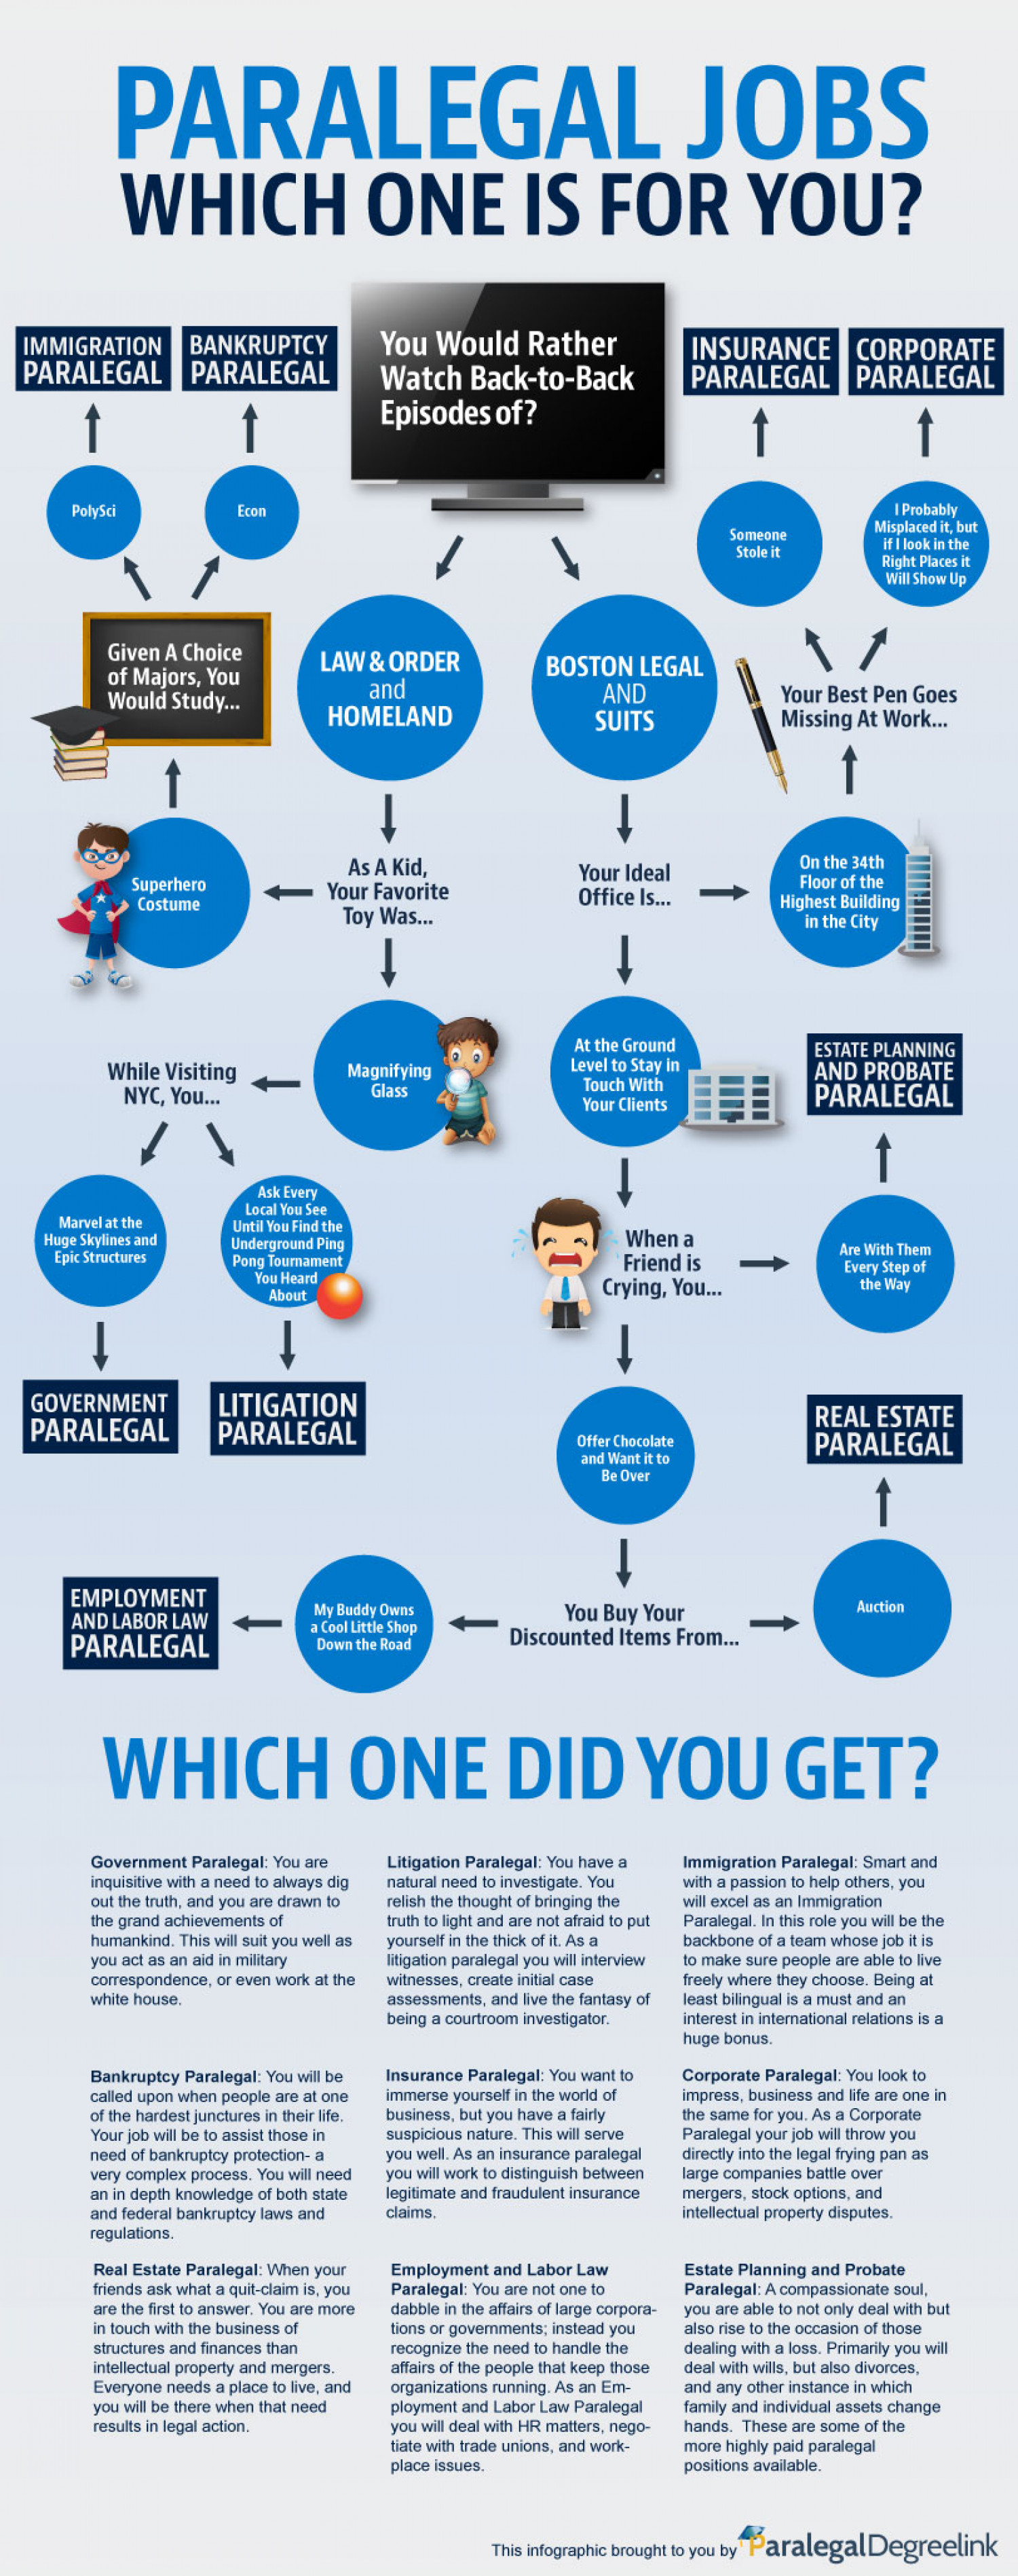 Paralegal Jobs: Which One is for You? Infographic